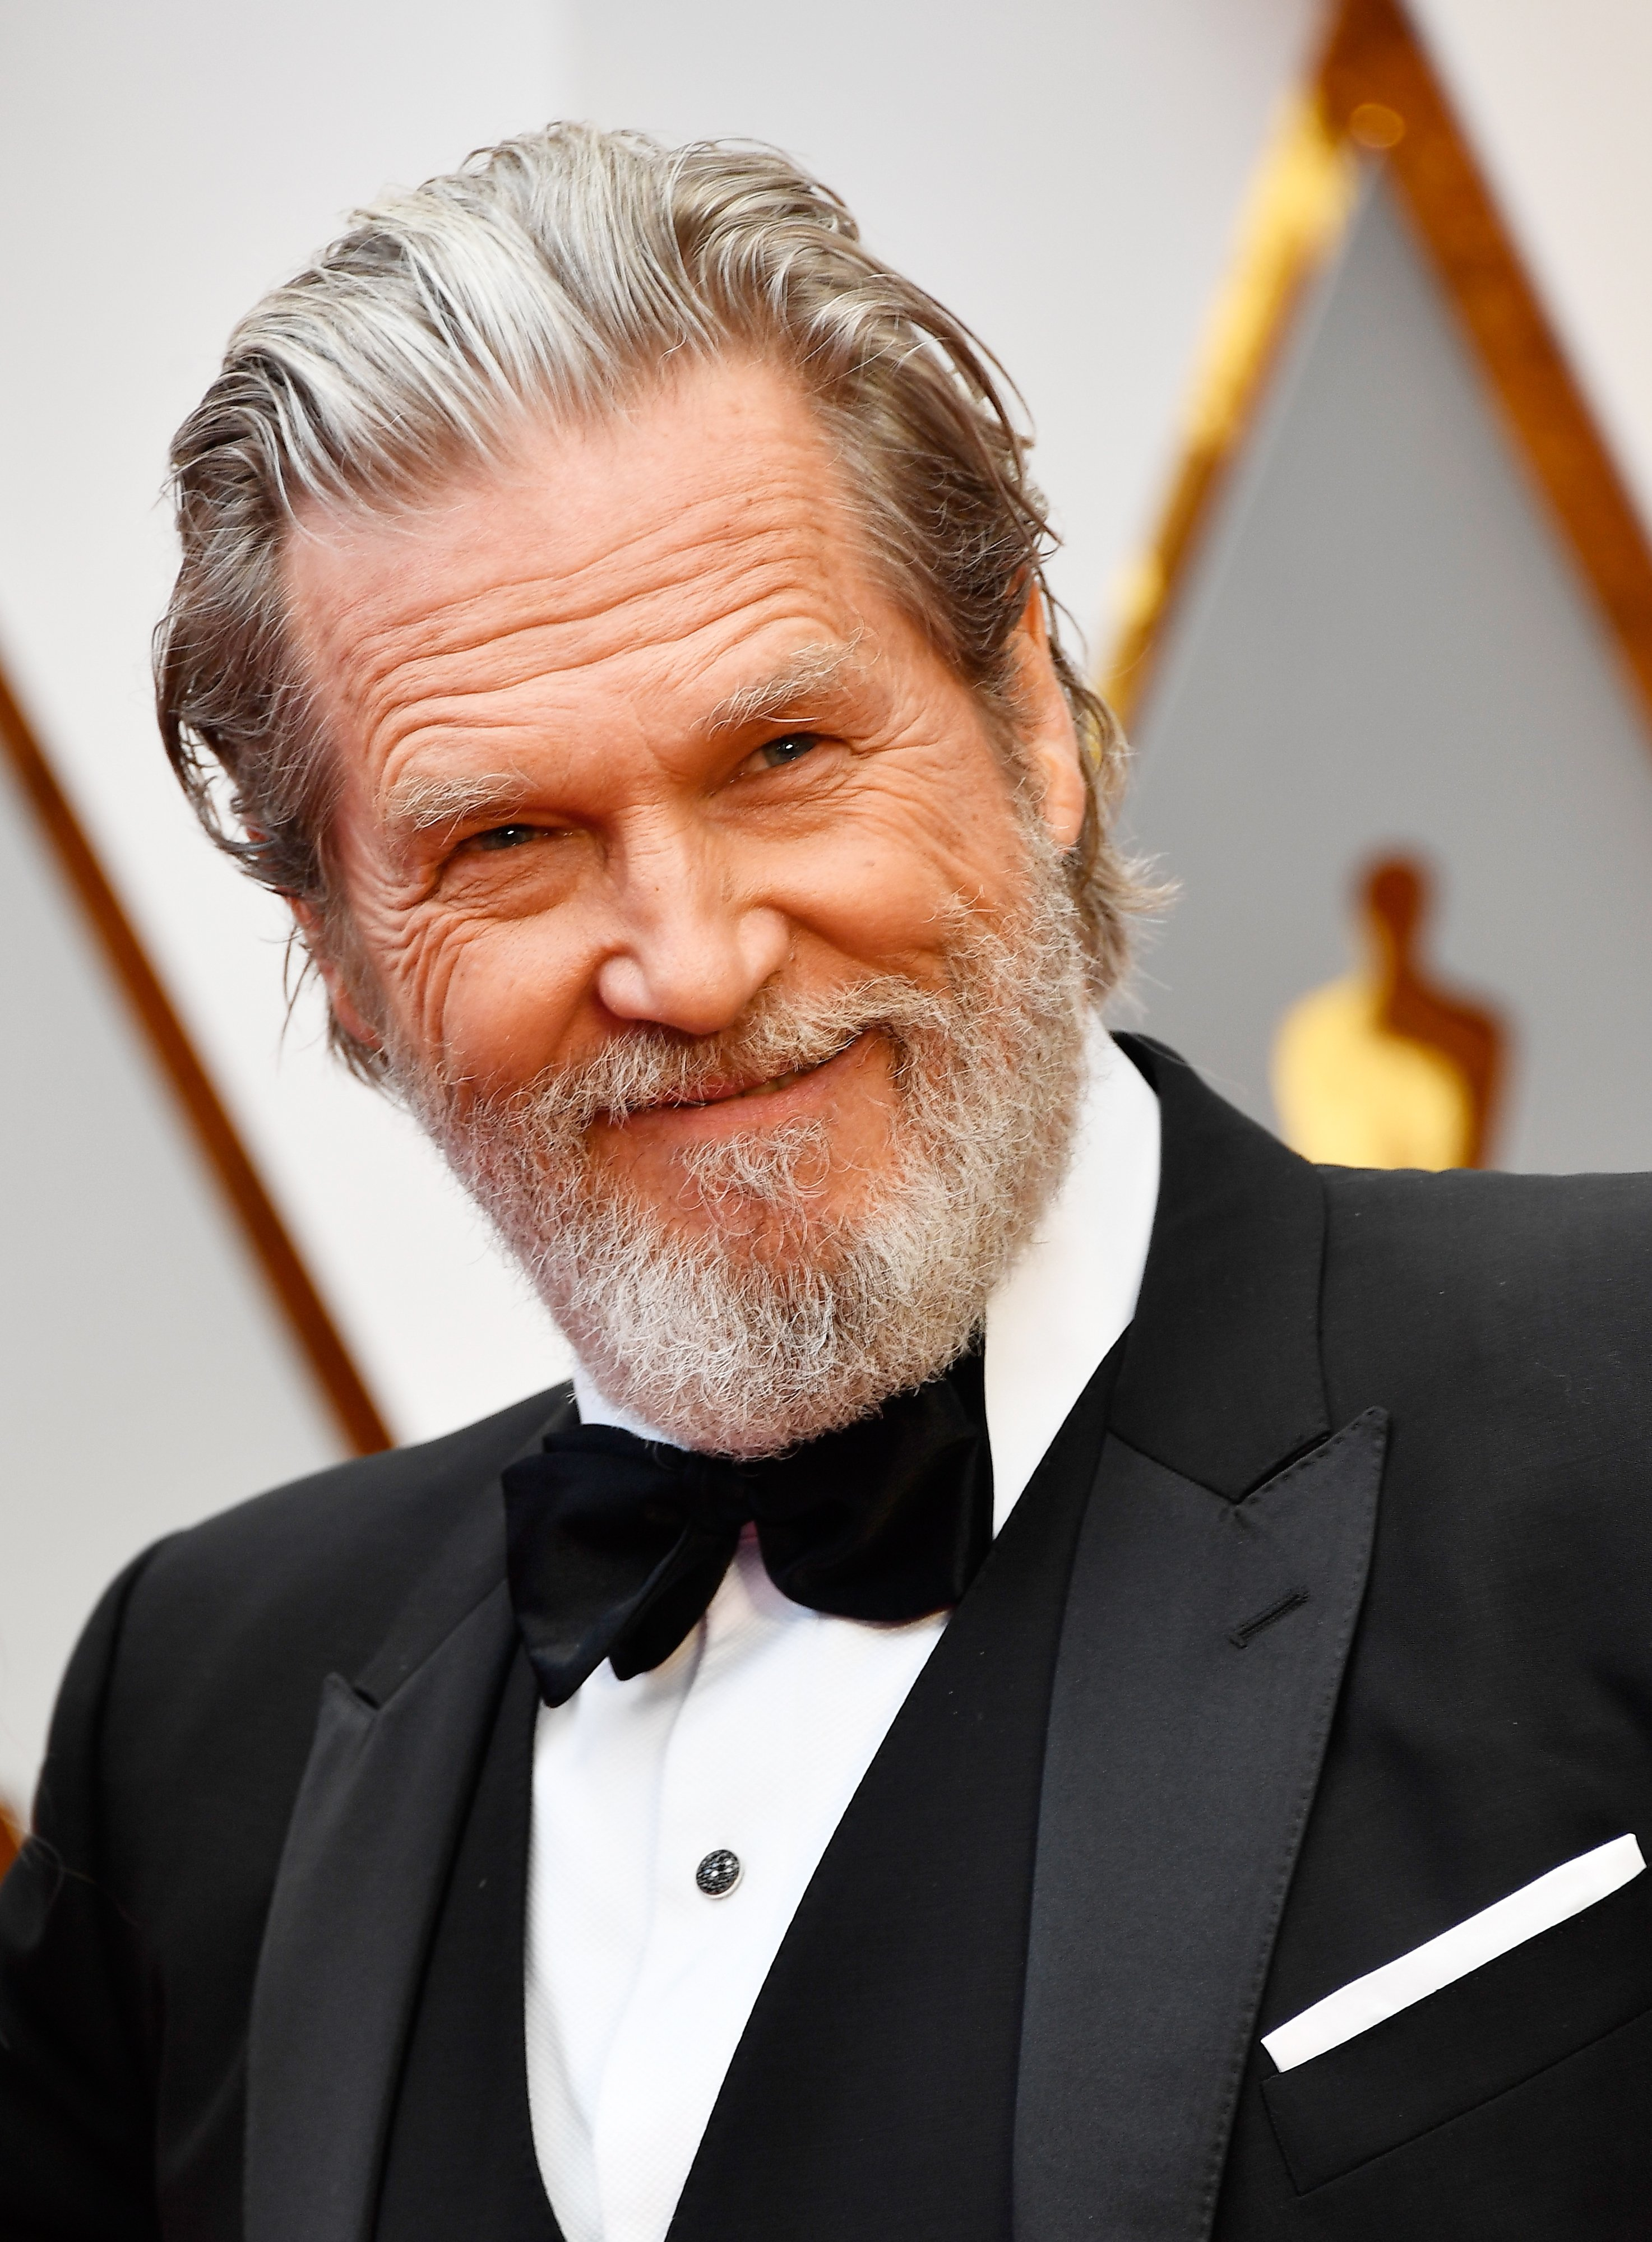 Jeff Bridges attends the 89th Annual Academy Awards at Hollywood & Highland Center on February 26, 2017 in Hollywood, California | Photo: Getty Images